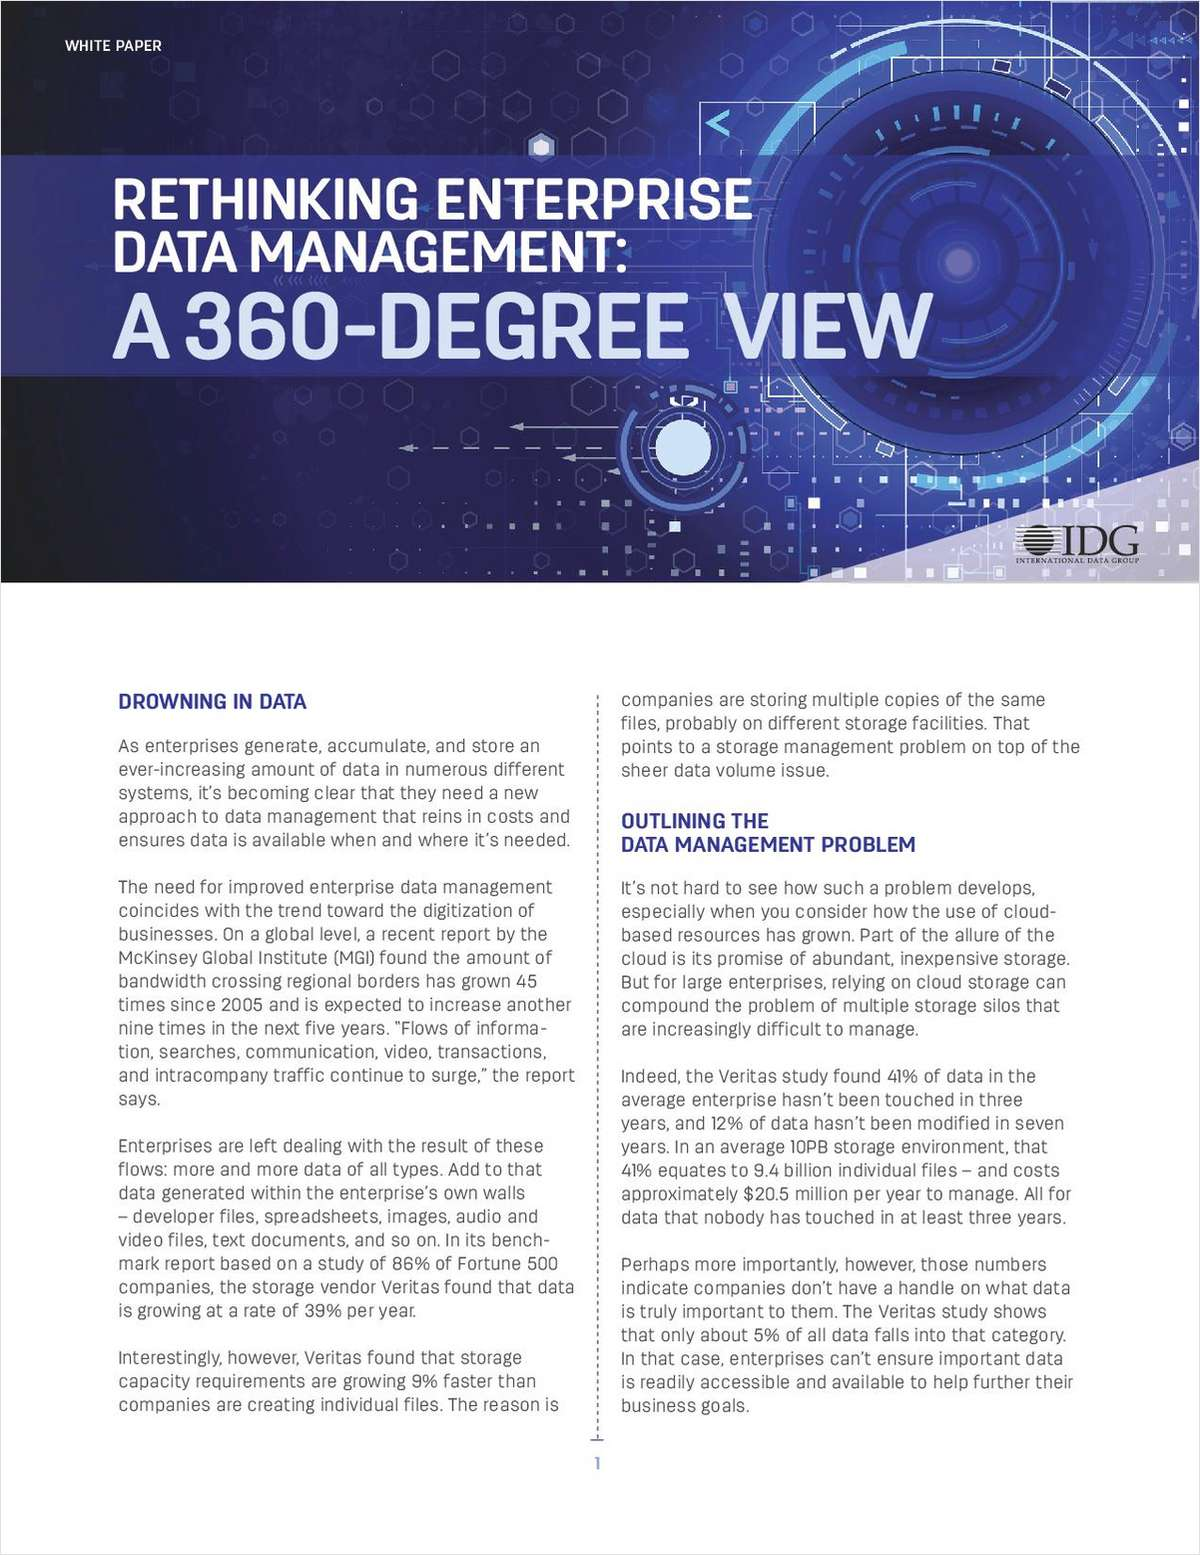 Rethinking Enterprise Data Management: A 360-Degree View